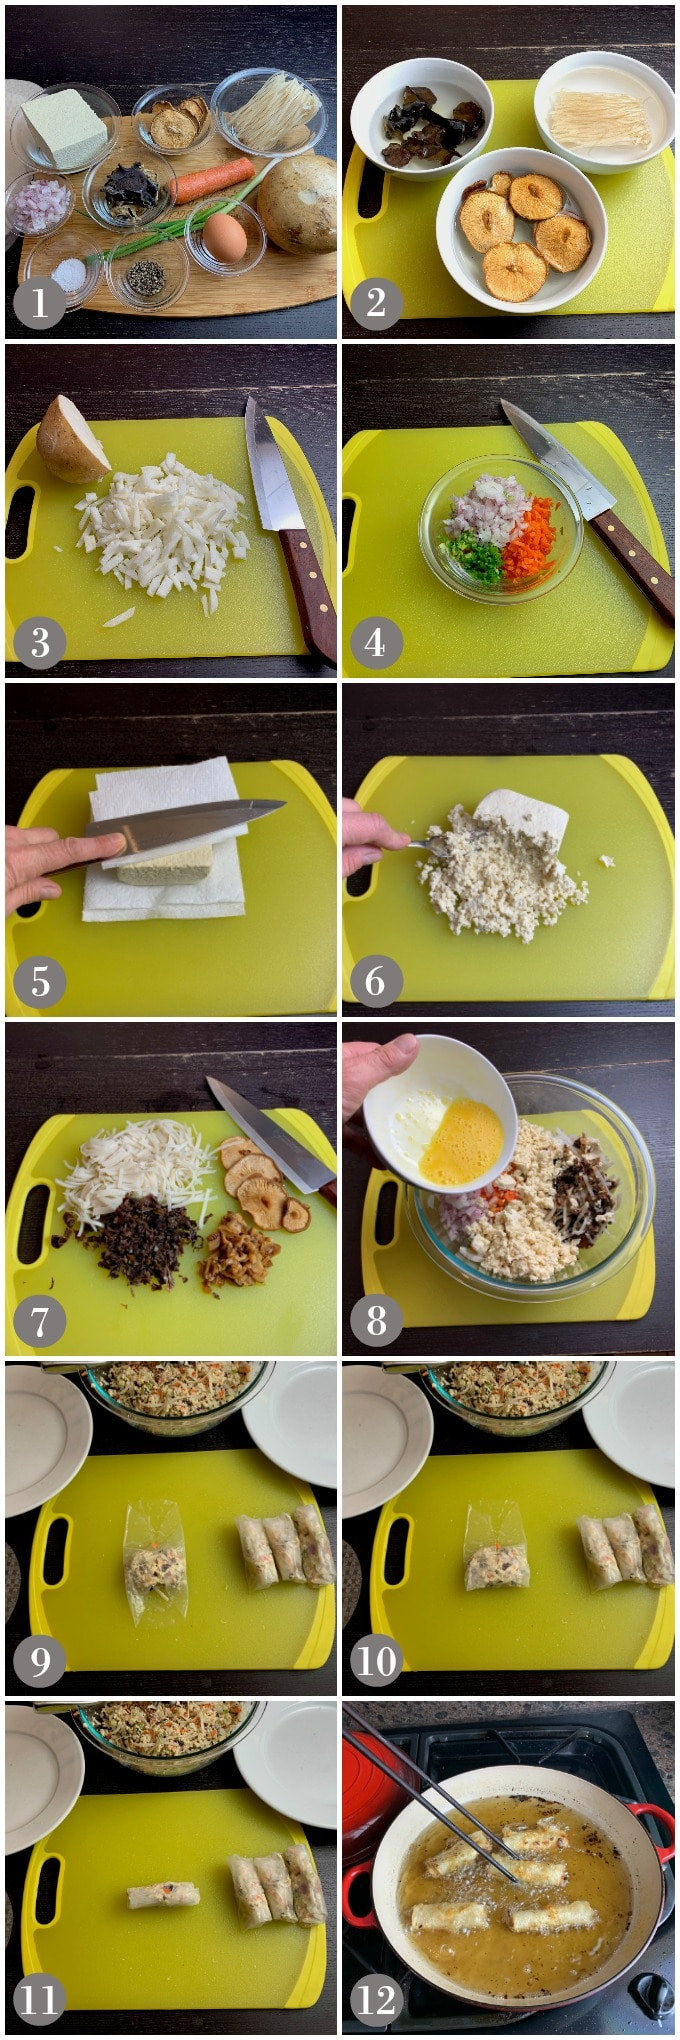 A collage of photos showing the ingredients and steps to make Vietnamese spring rolls fried in a pan with oil.